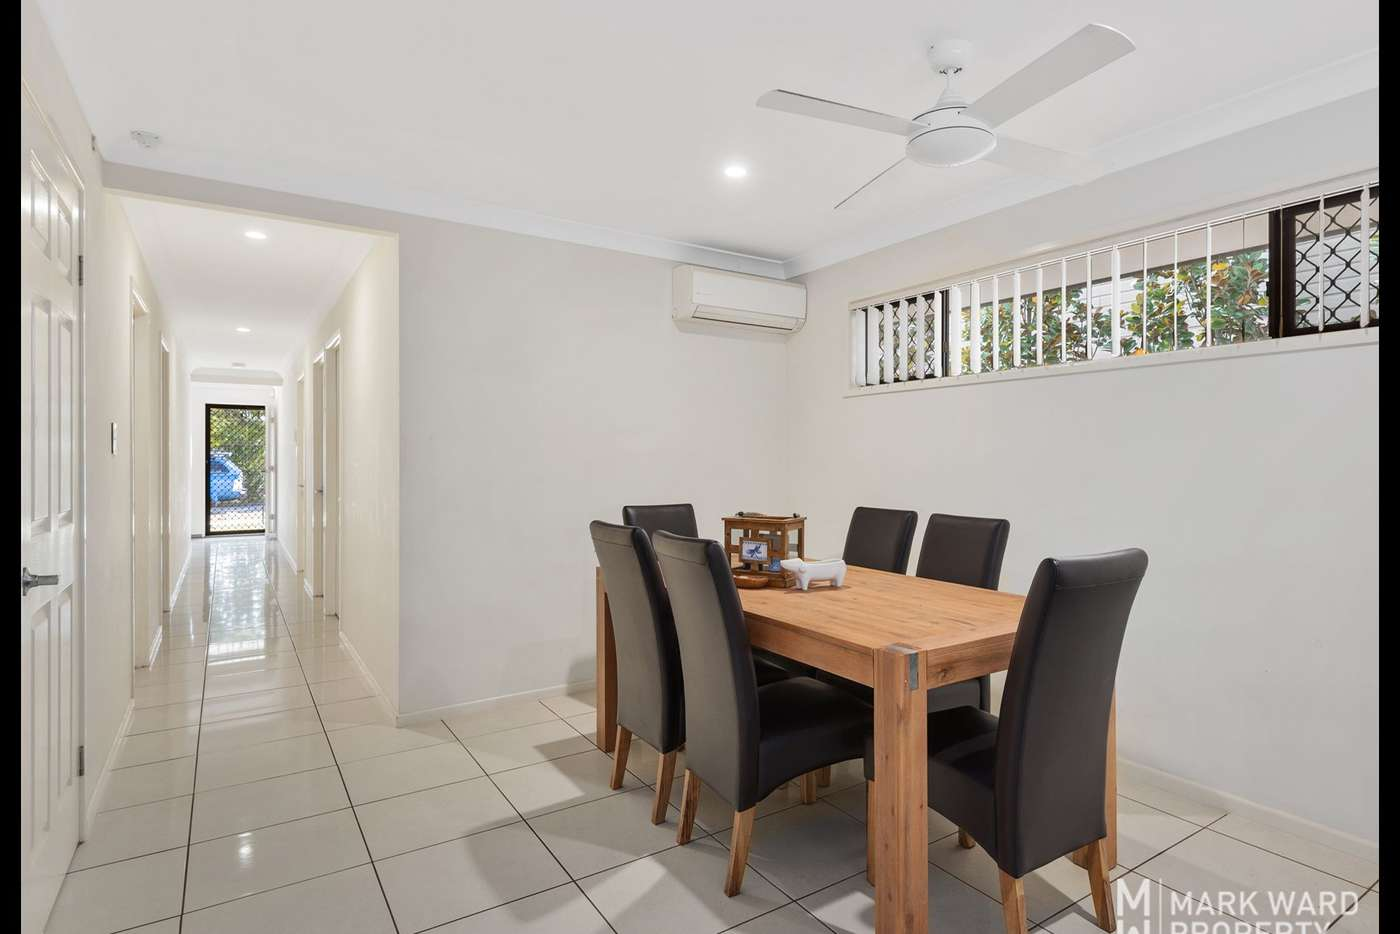 Sixth view of Homely house listing, 96 Dartmouth Street, Coopers Plains QLD 4108